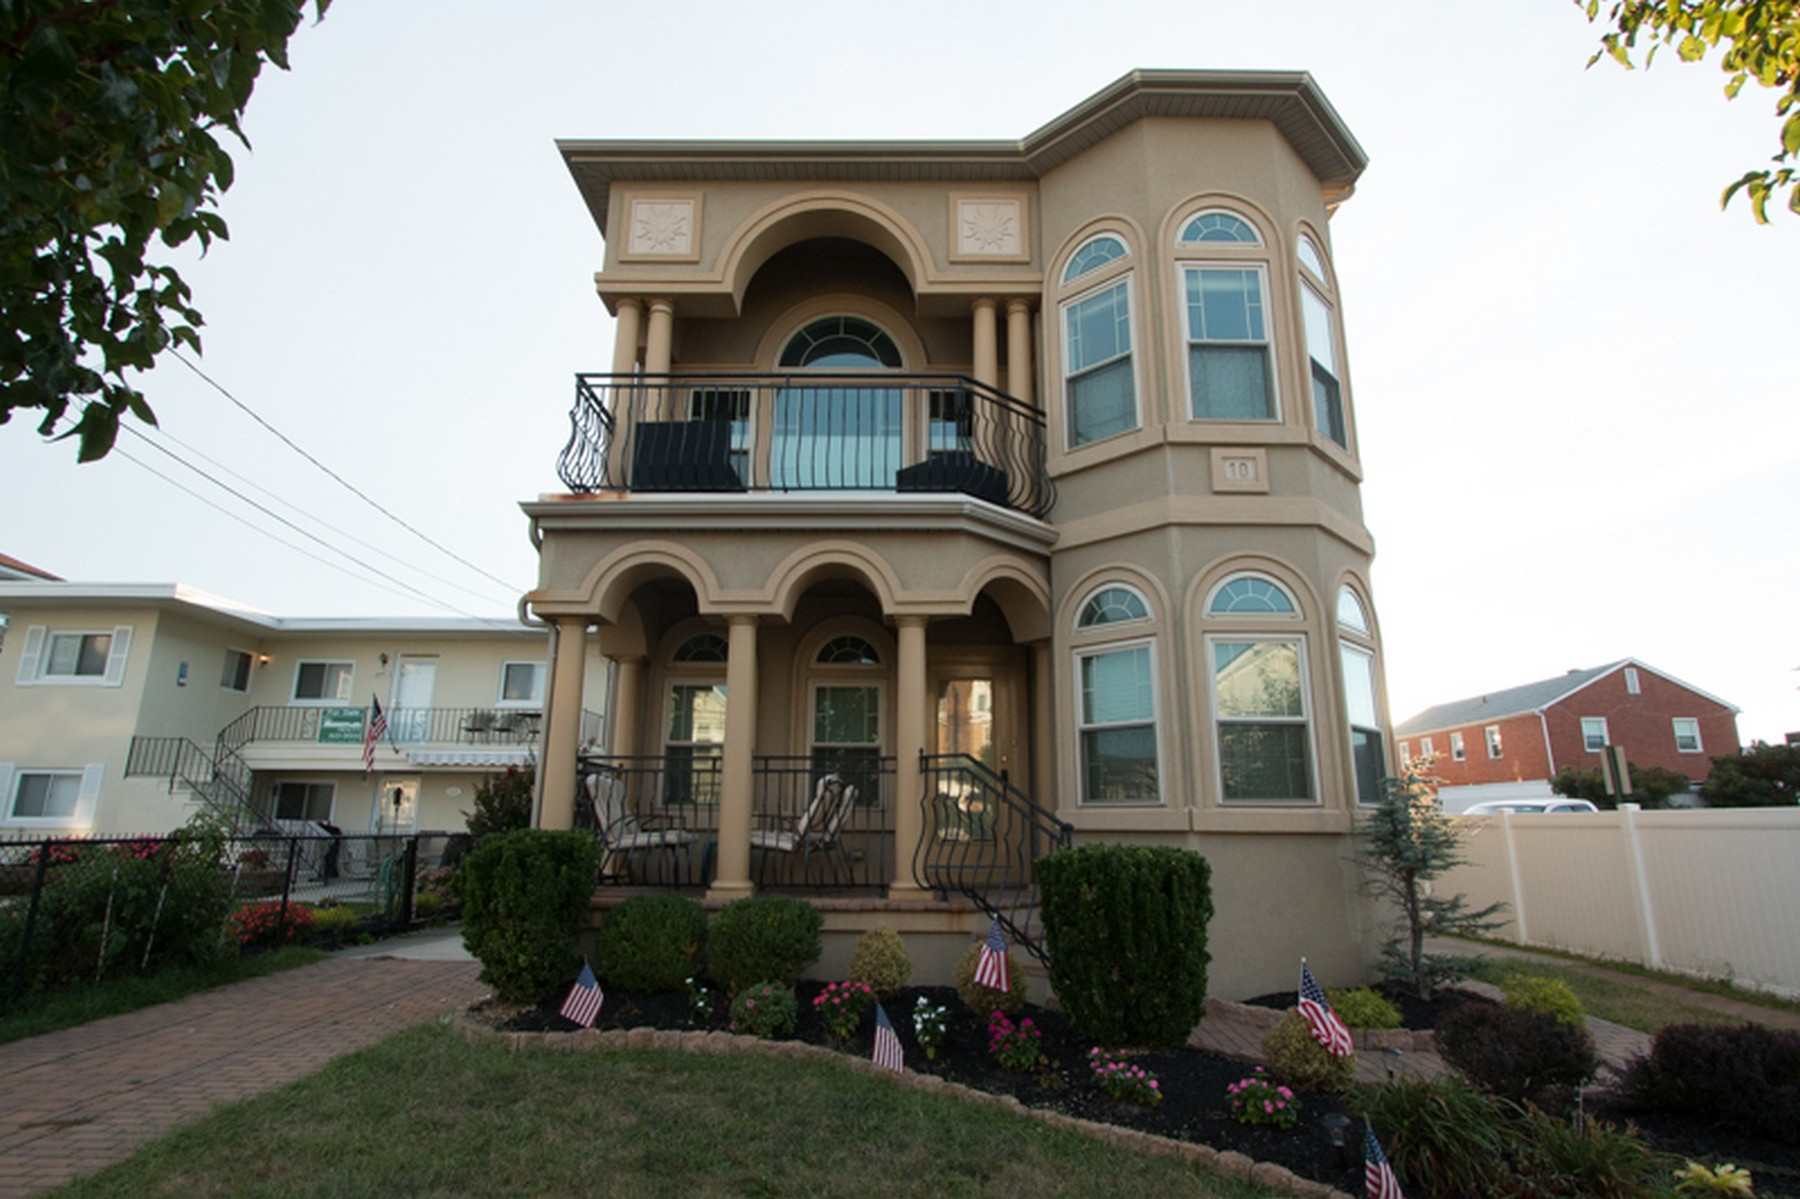 Condominium for Sale at 10 S Frontenac Avenue #A Margate, New Jersey 08402 United States